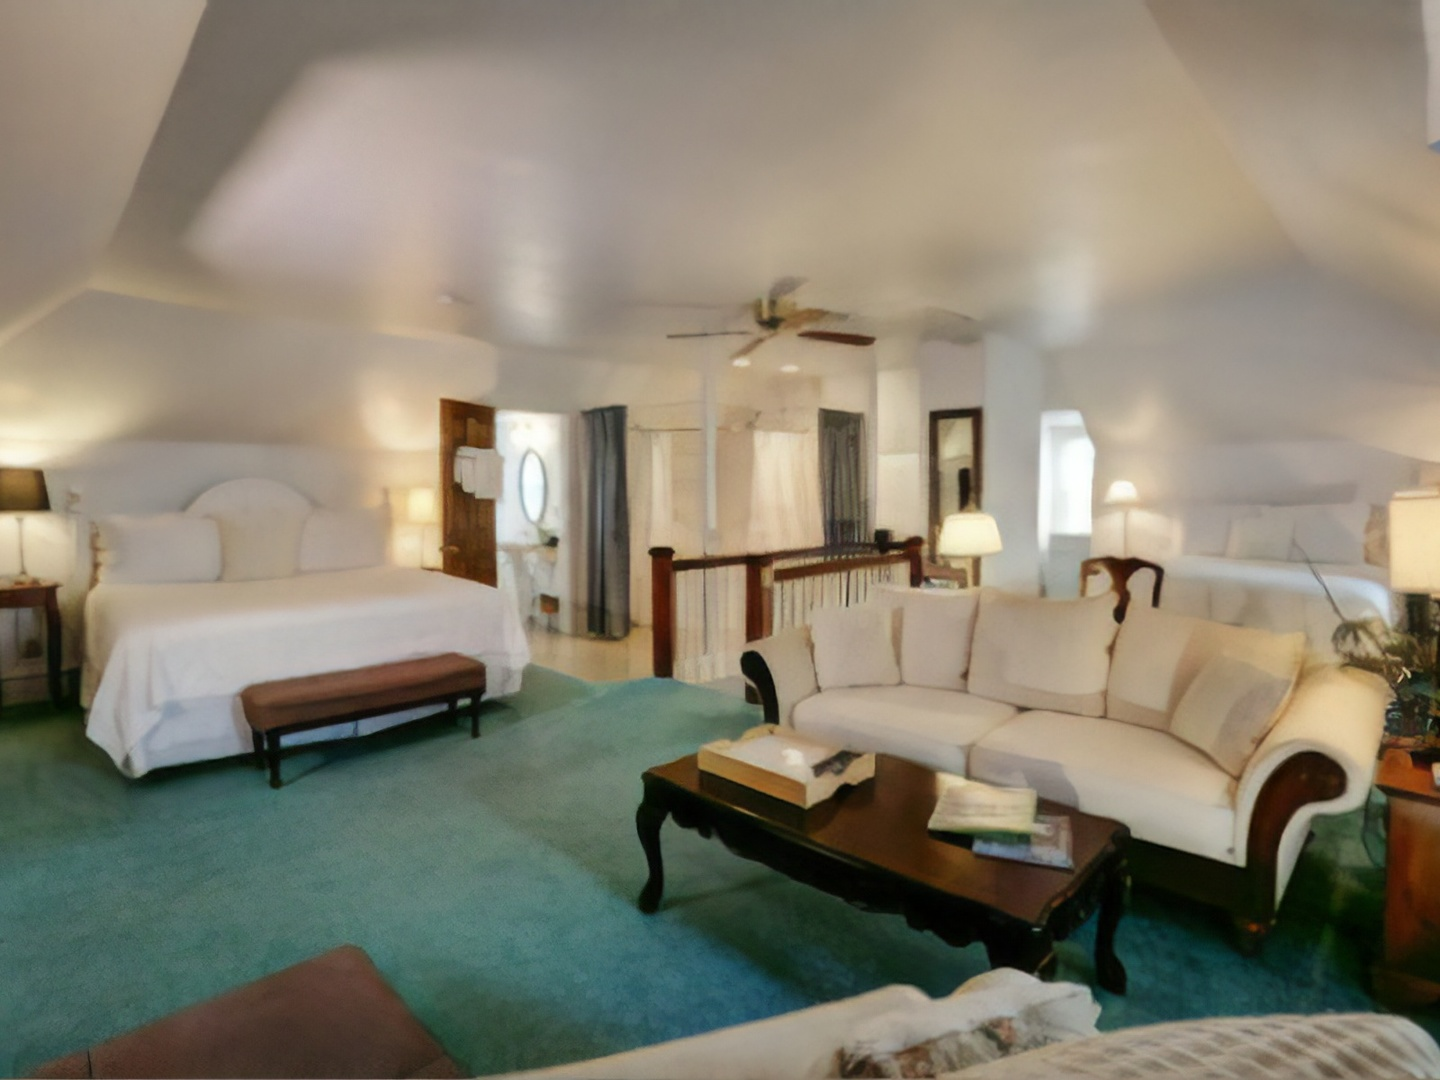 A living room filled with furniture and a bed at Olde Square Inn.